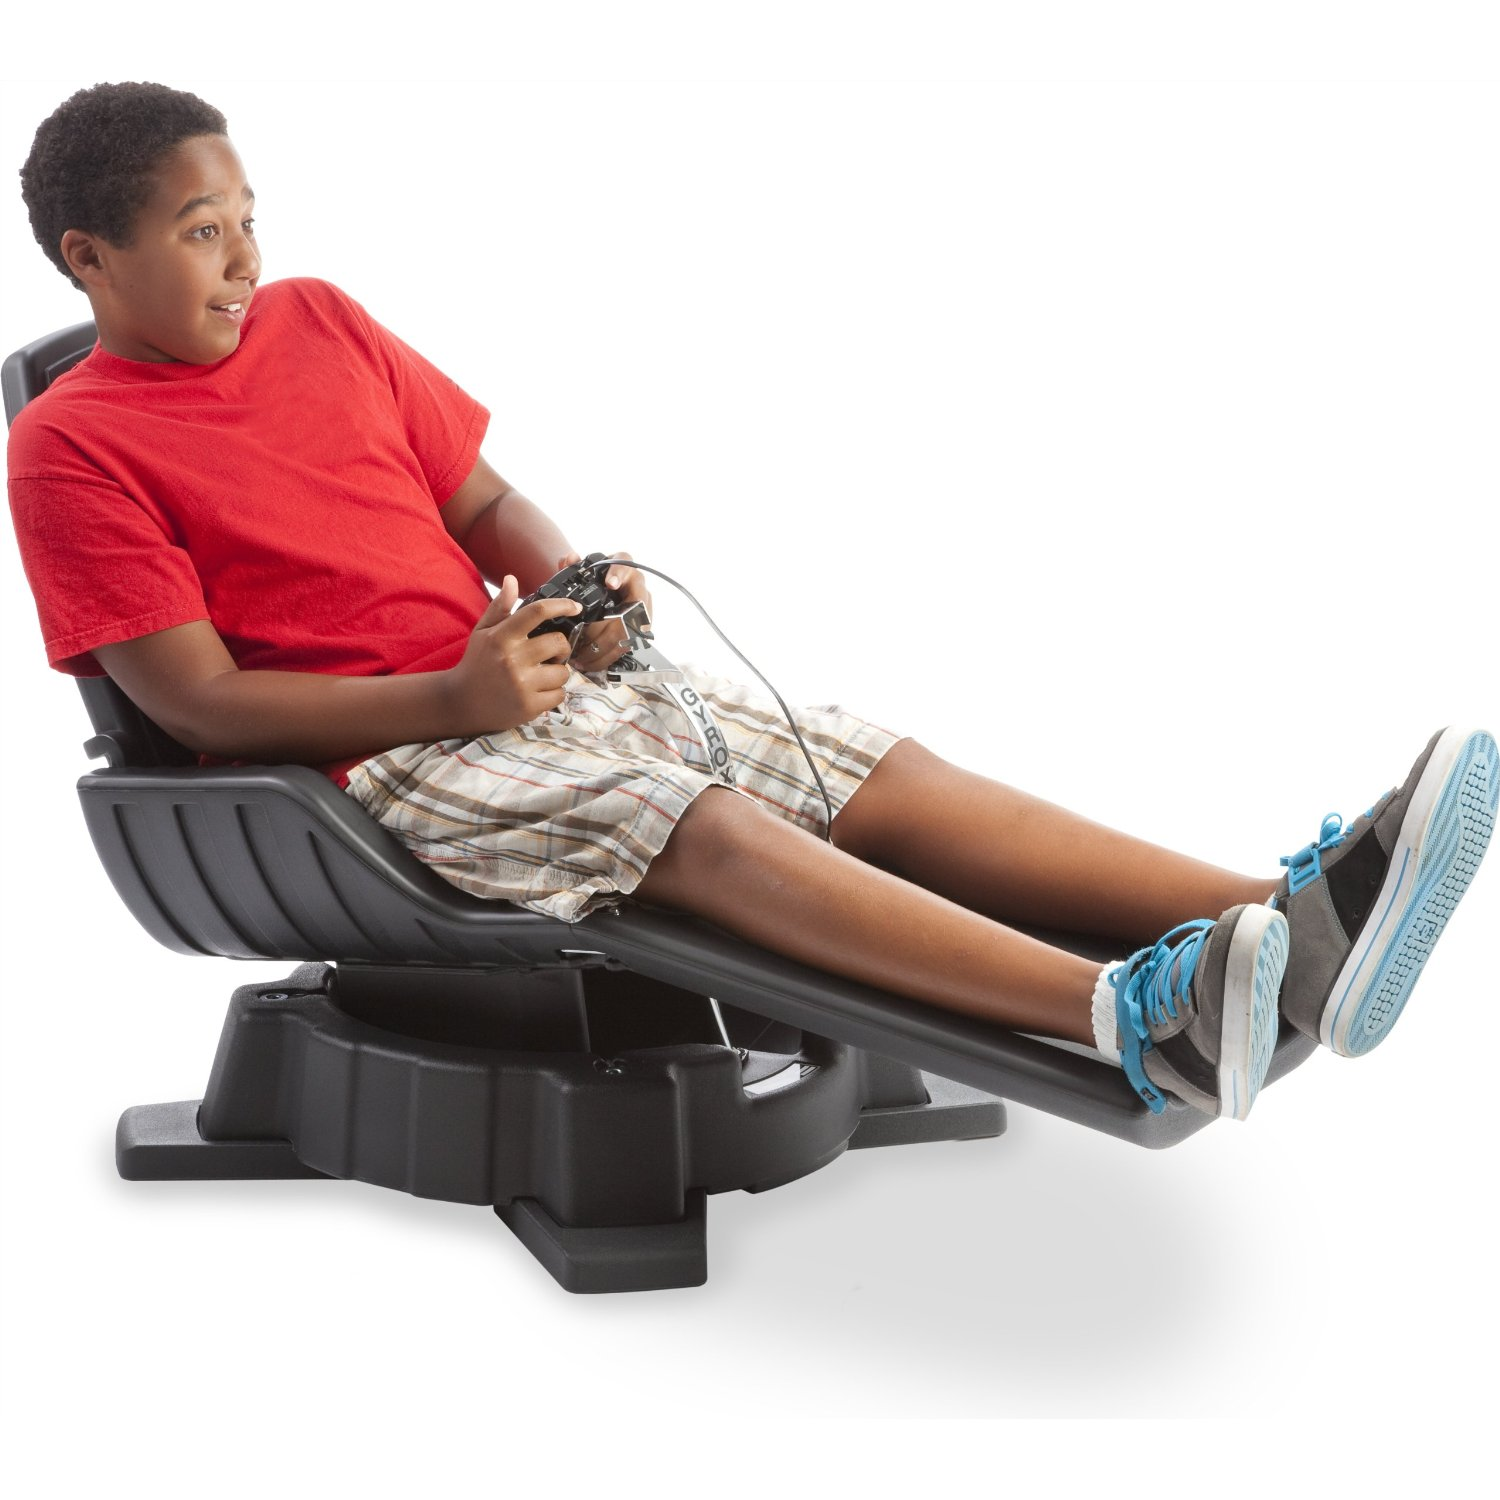 Image Result For Gaming Chair Best Buya